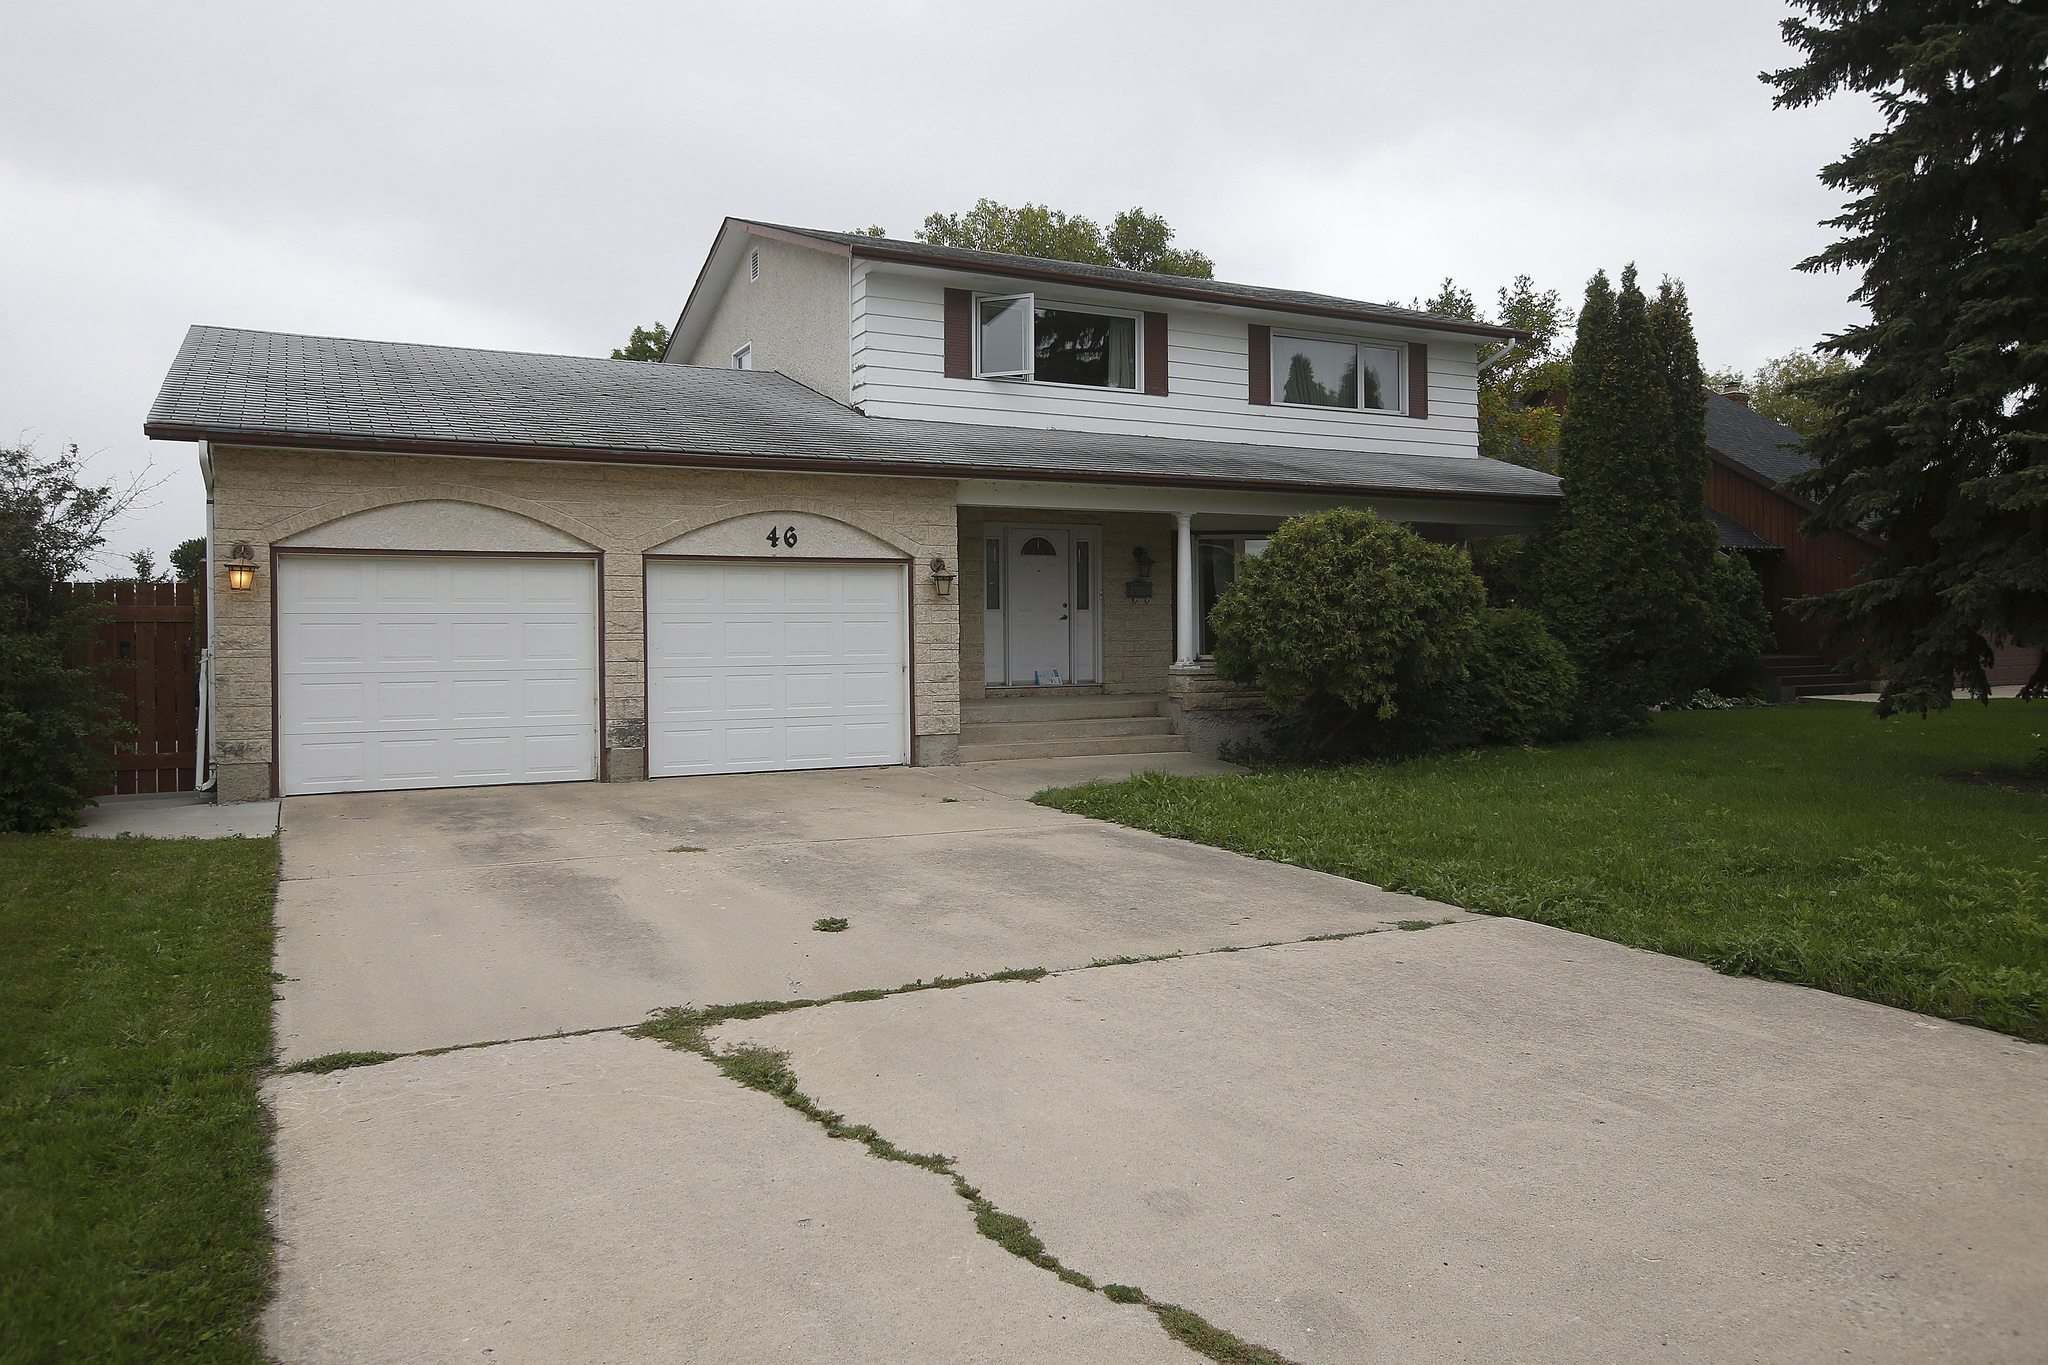 The alleged home of Robert Dawson, which was raided by police on Wednesday. (John Woods / Winnipeg Free Press)</p>